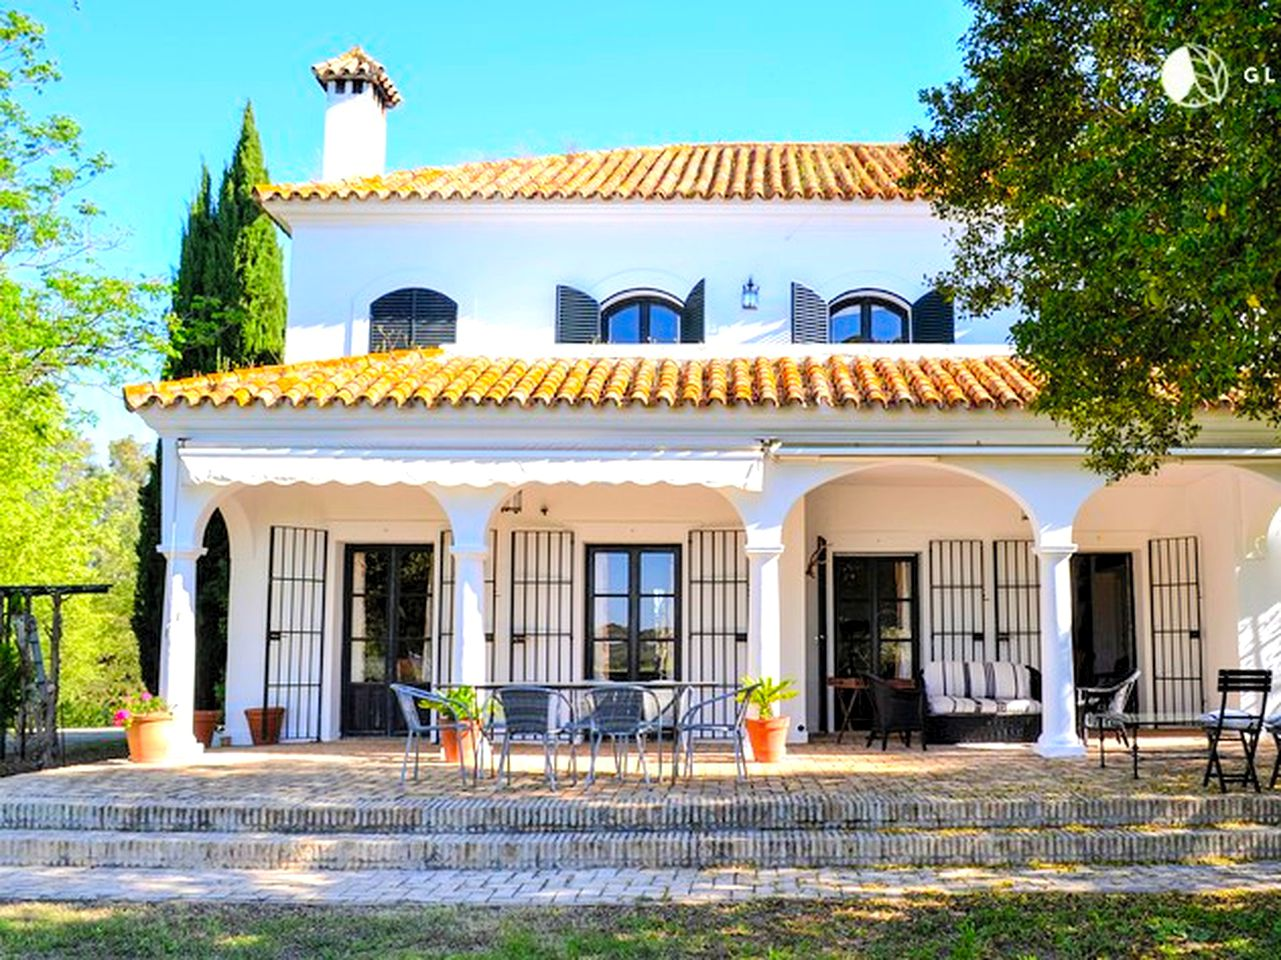 Top Seville villas for holidays in Spain.